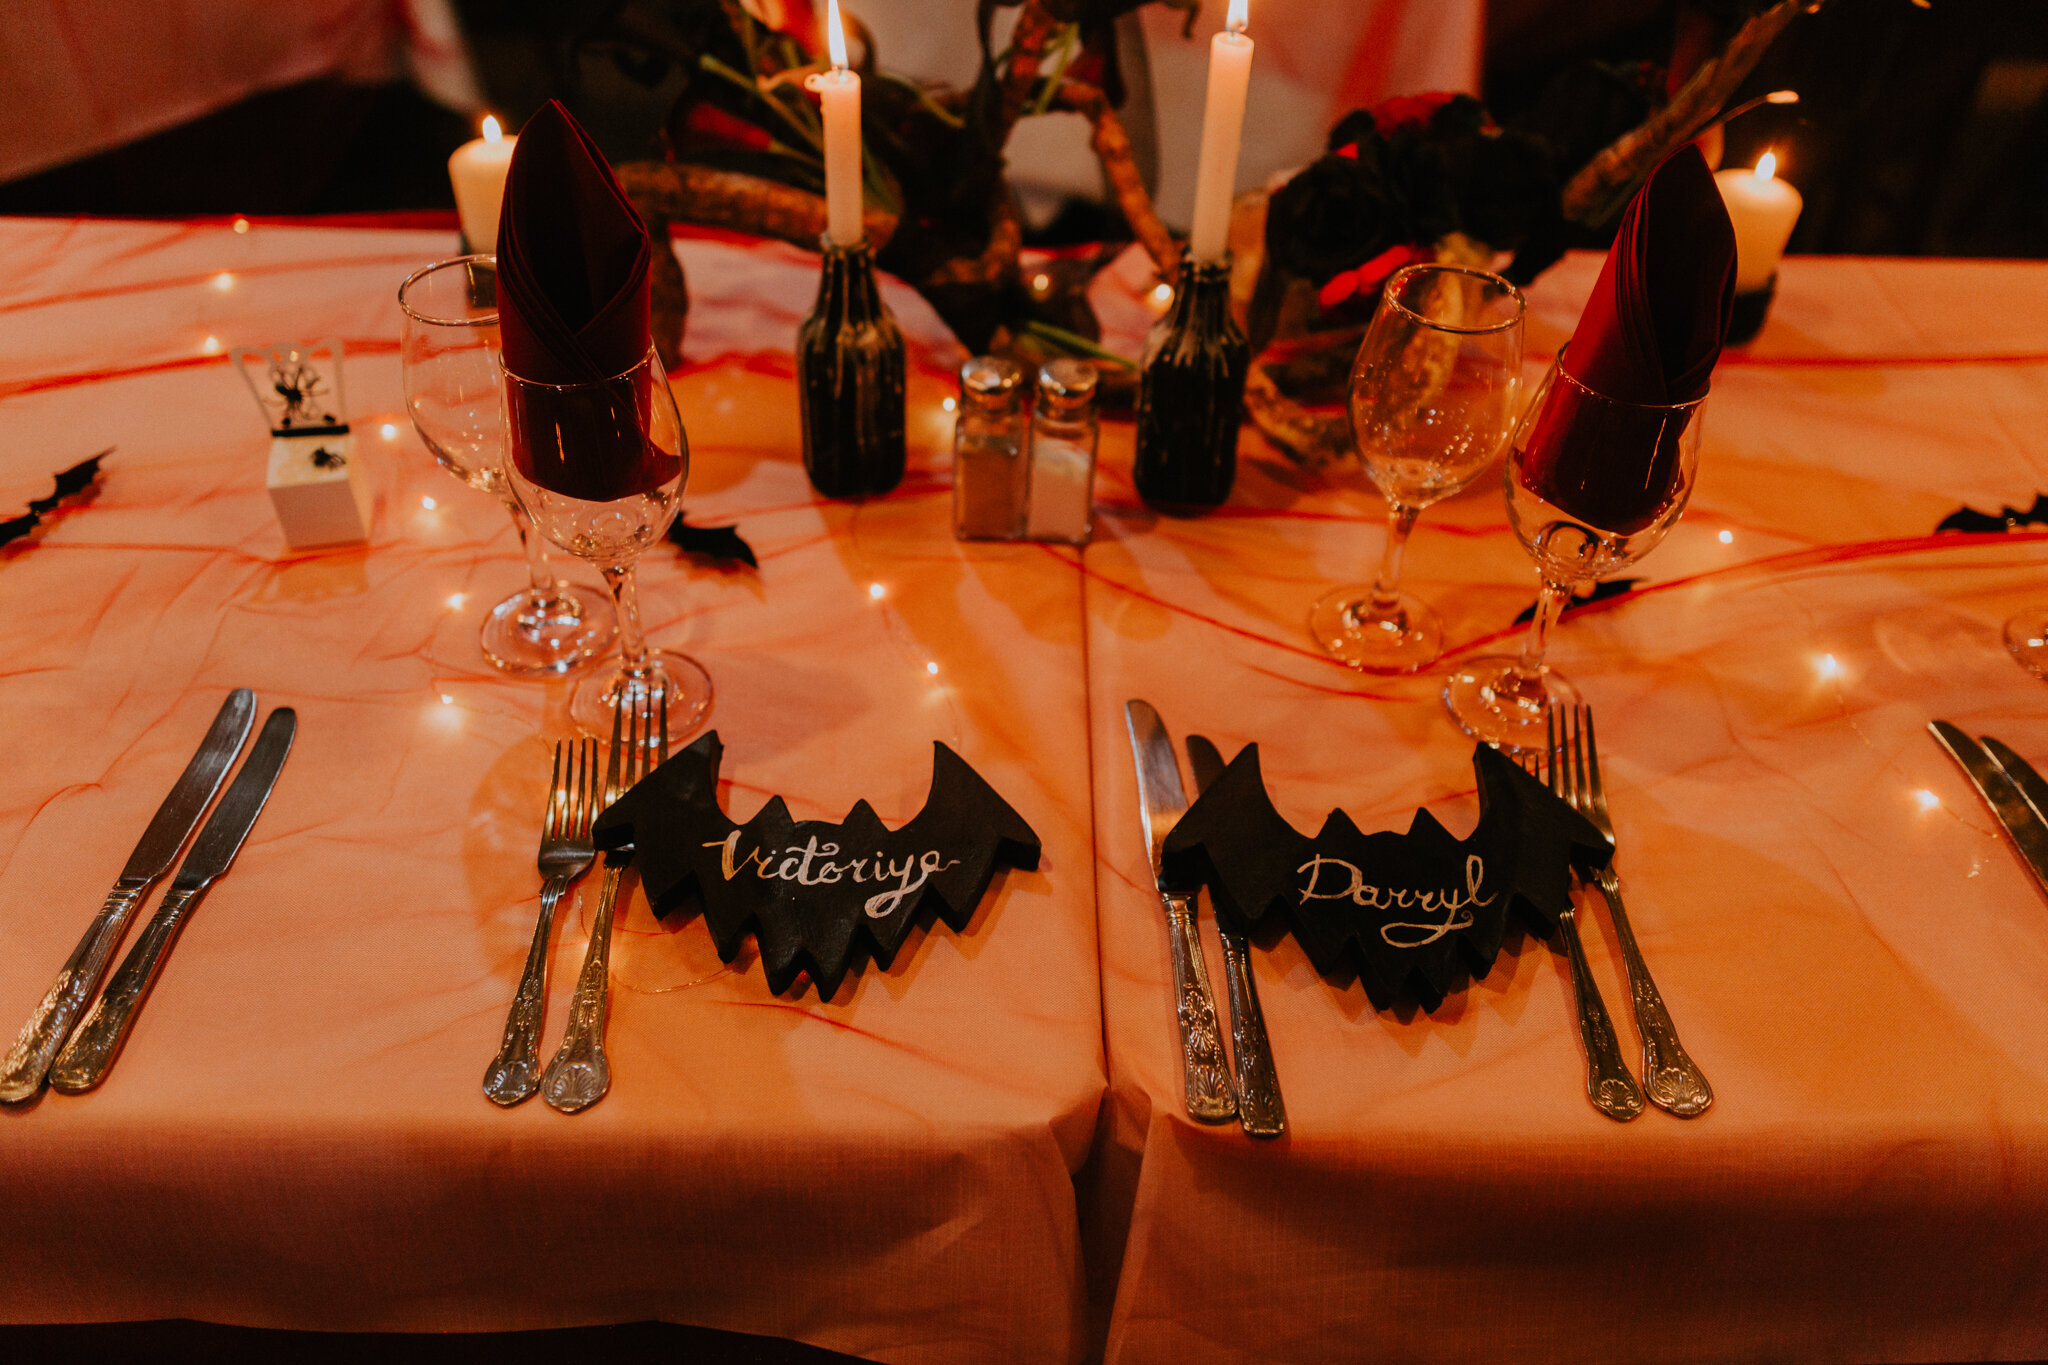 The couple's Halloween names table decor